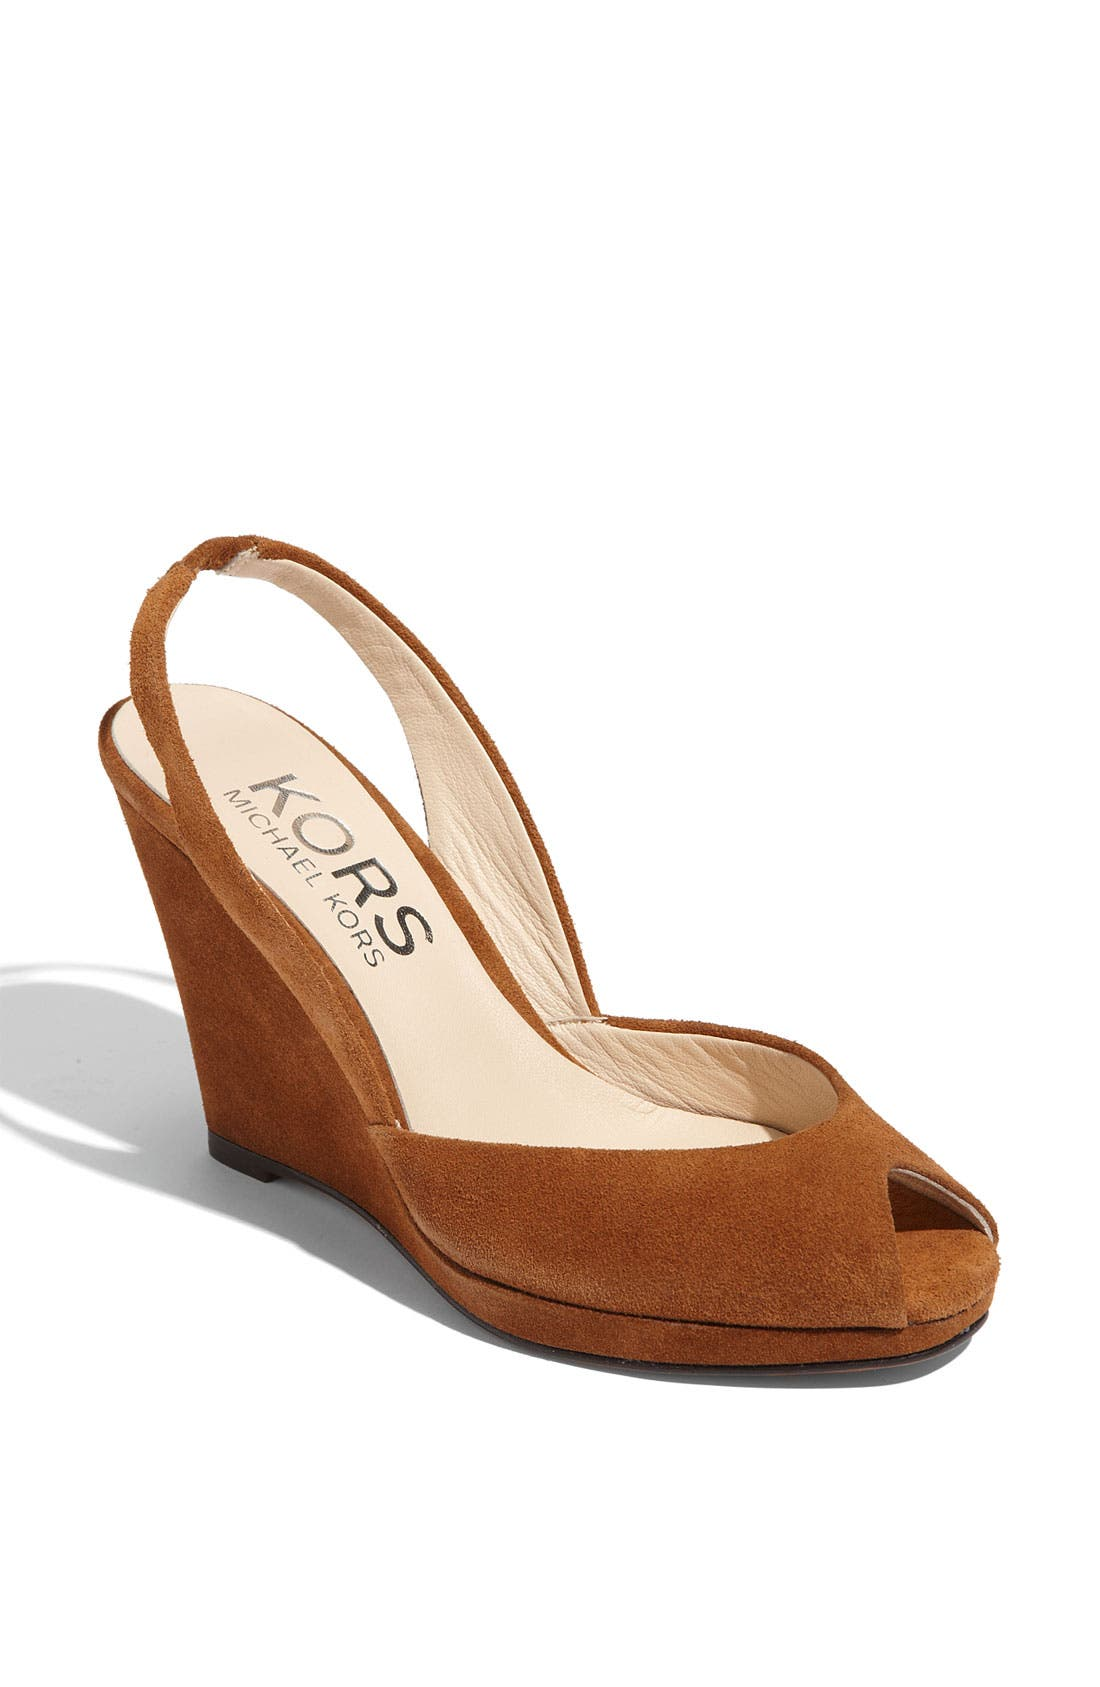 Alternate Image 1 Selected - KORS Michael Kors 'Vivian' Sandal